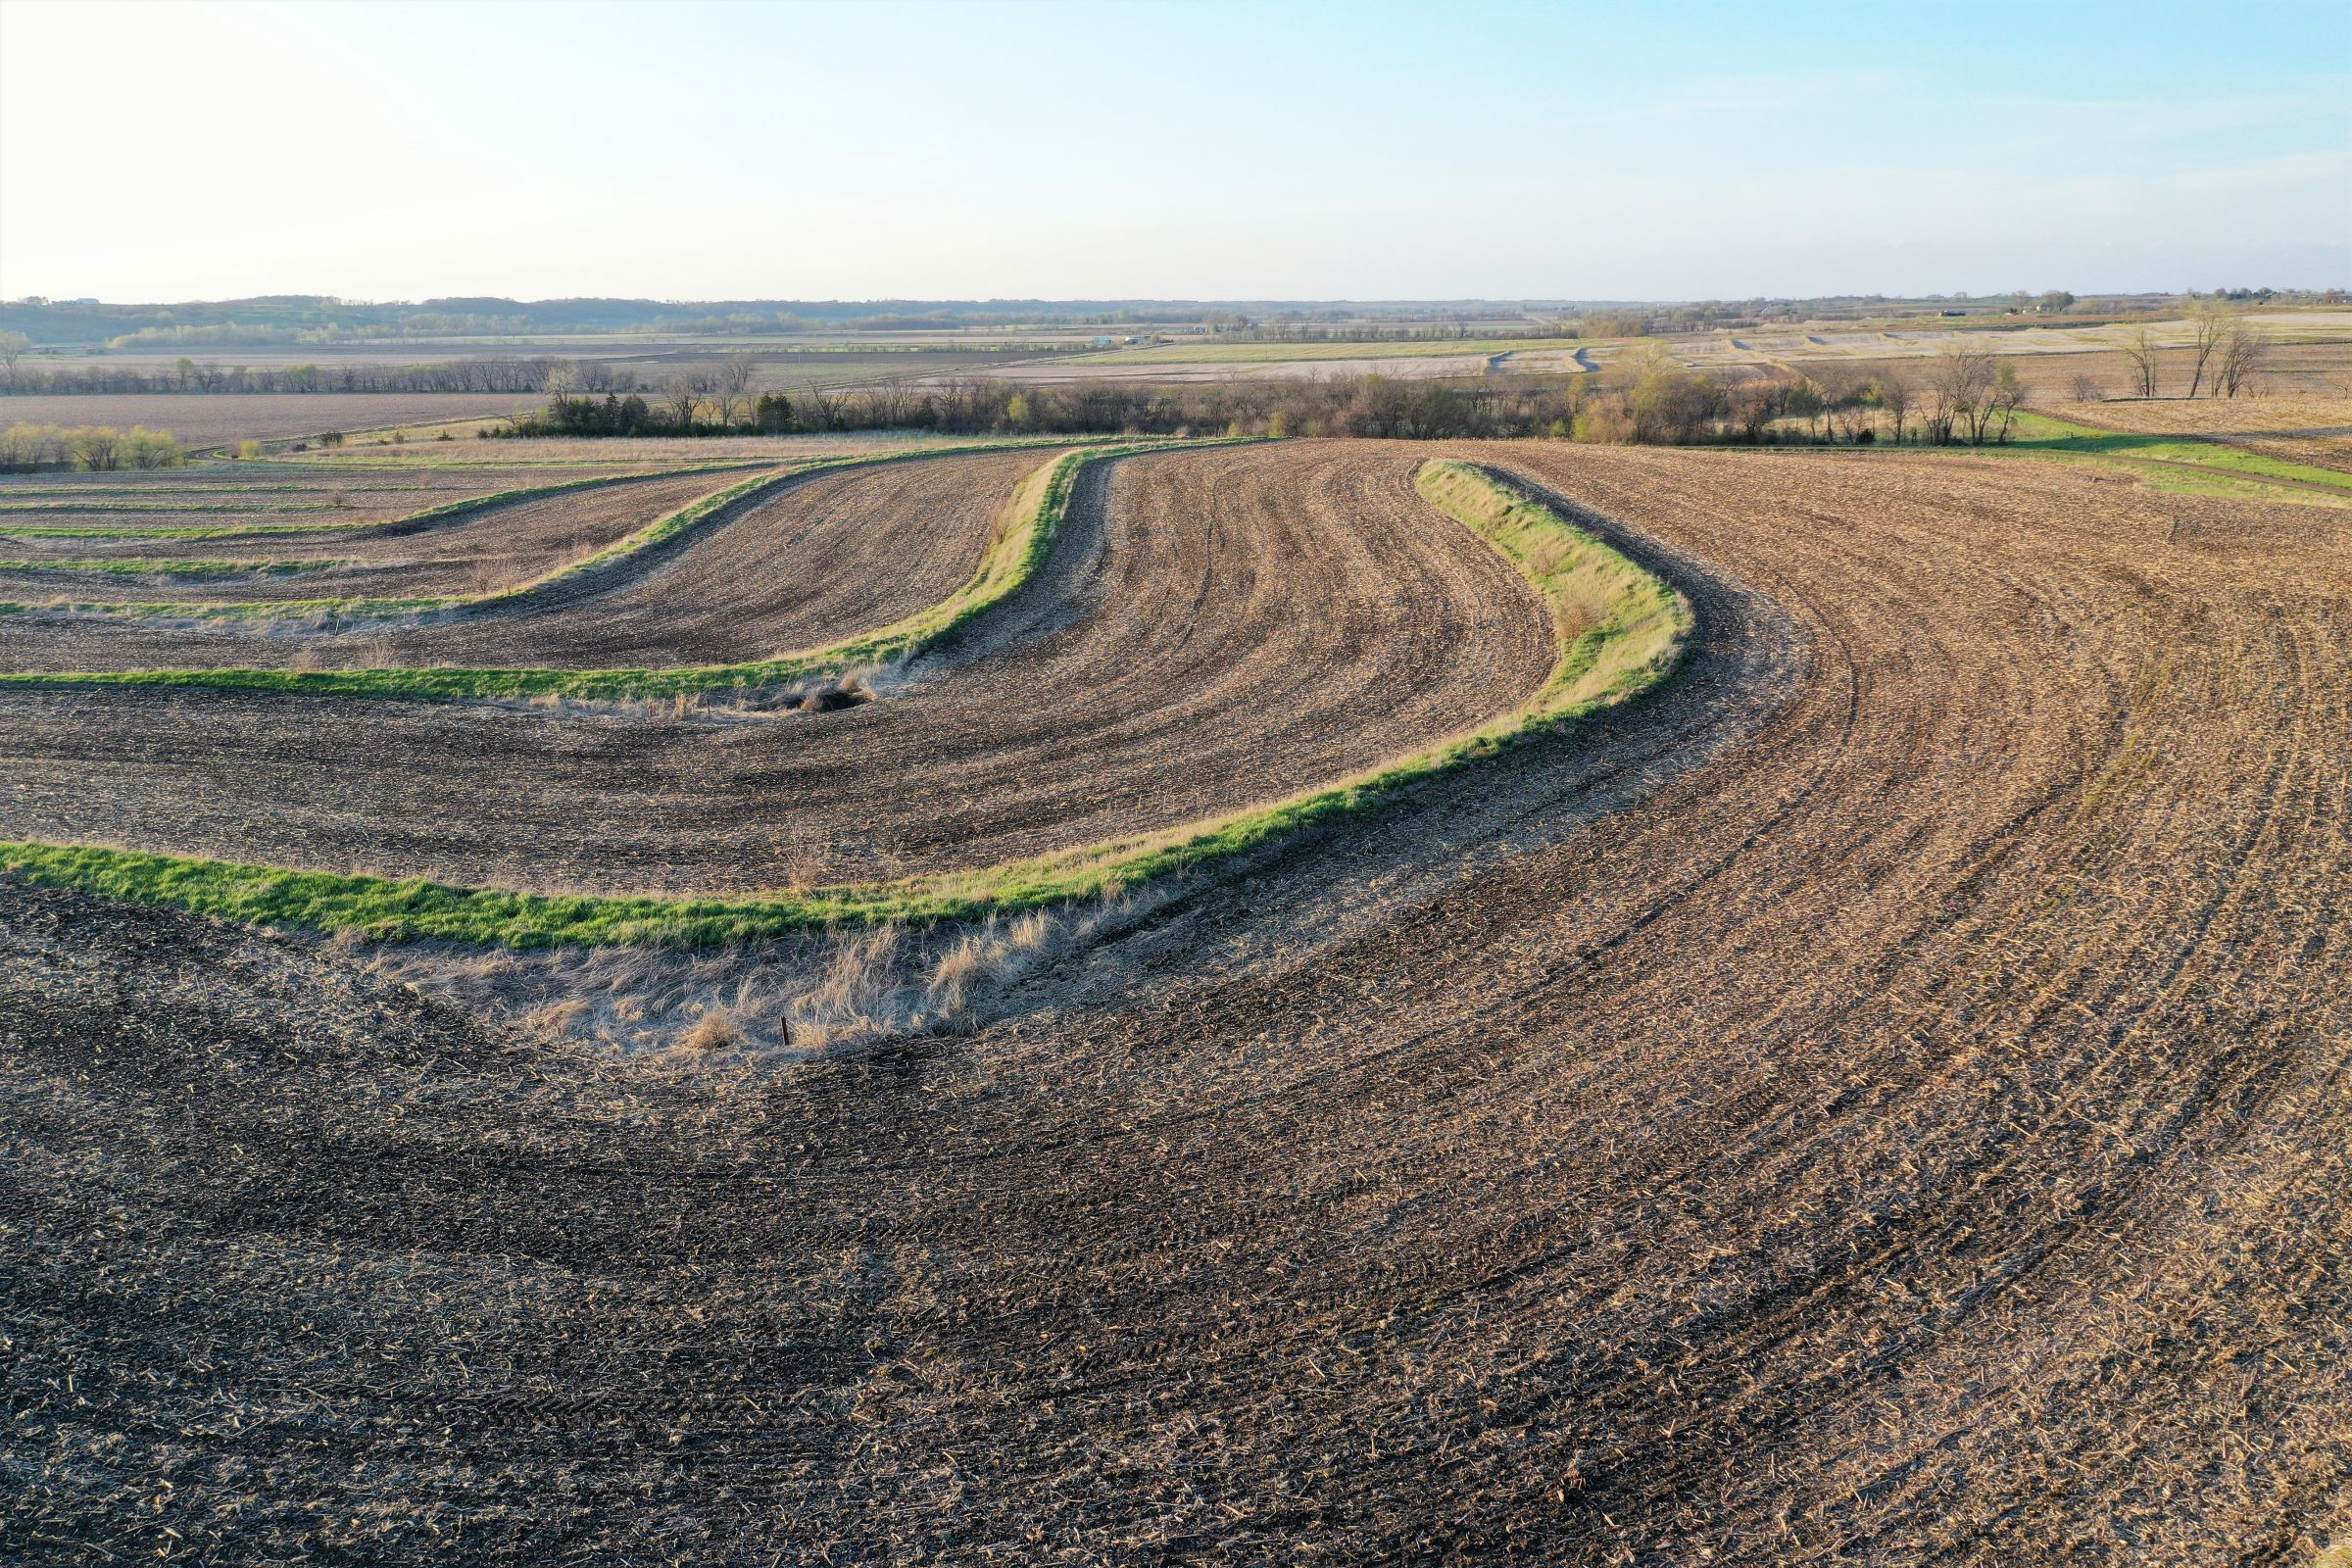 land-page-county-iowa-160-acres-listing-number-14980-3-2020-04-28-172937.jpg